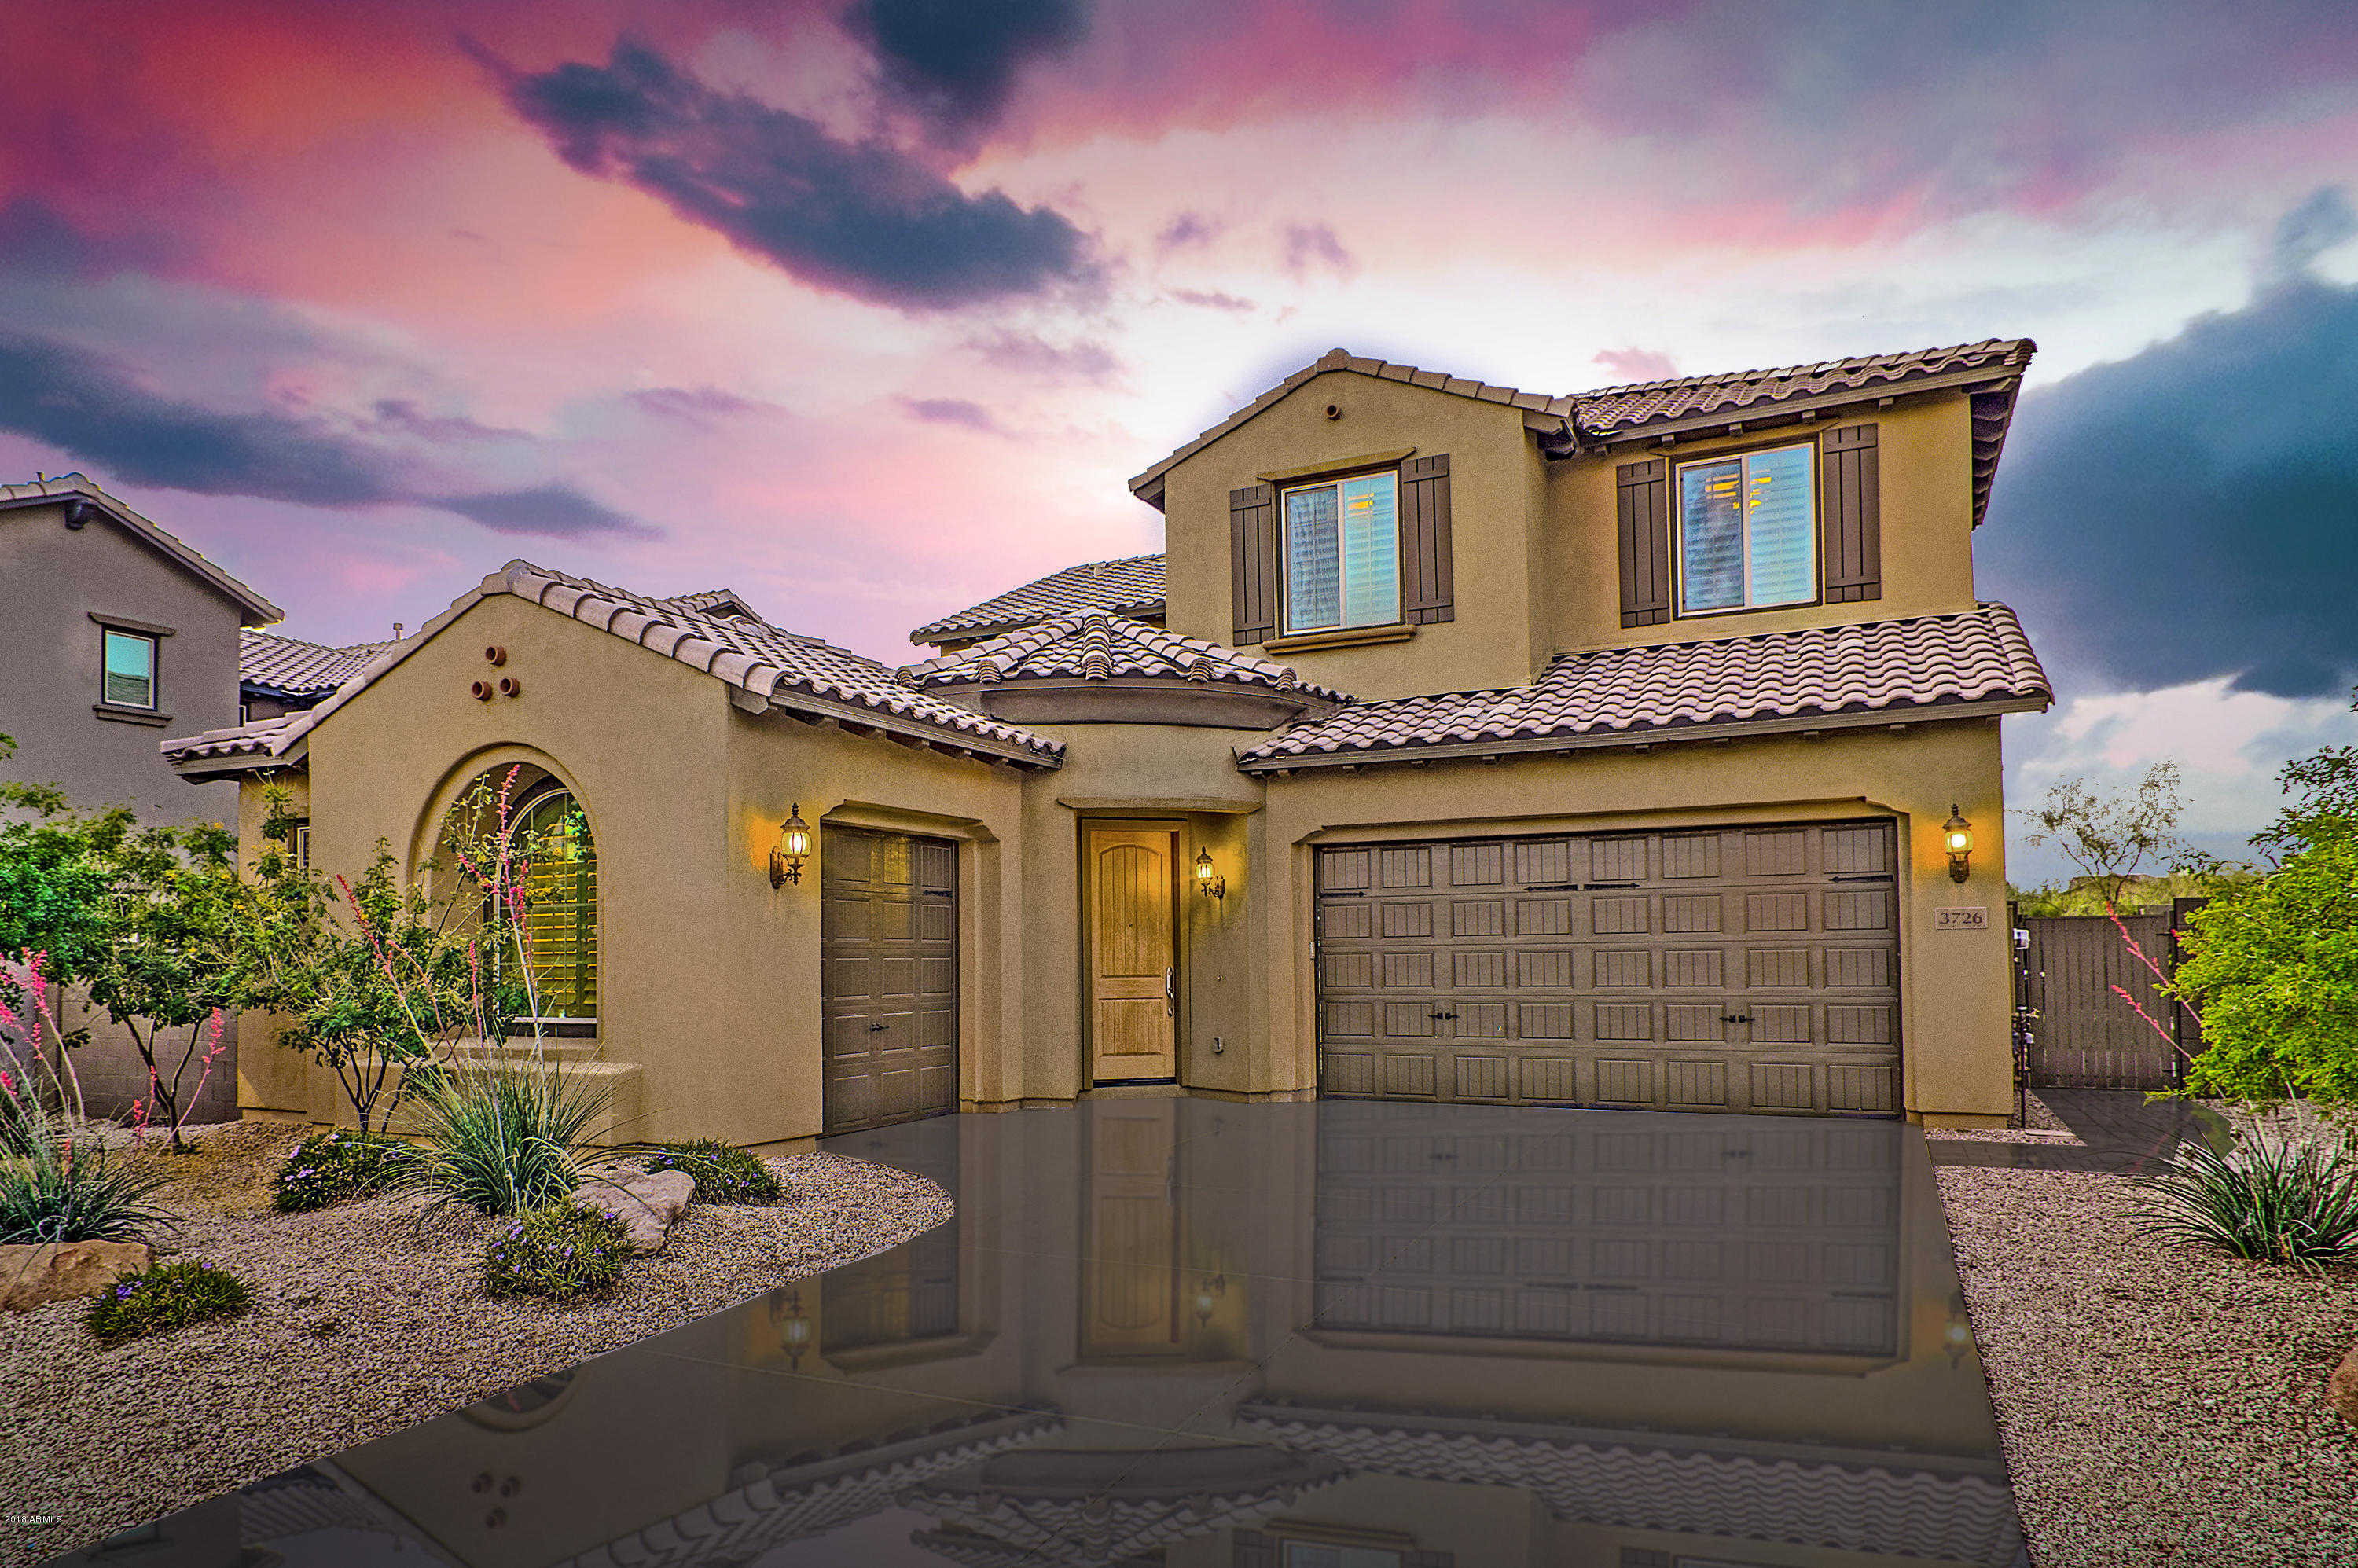 $675,000 - 4Br/4Ba - Home for Sale in Fireside At Desert Ridge, Phoenix